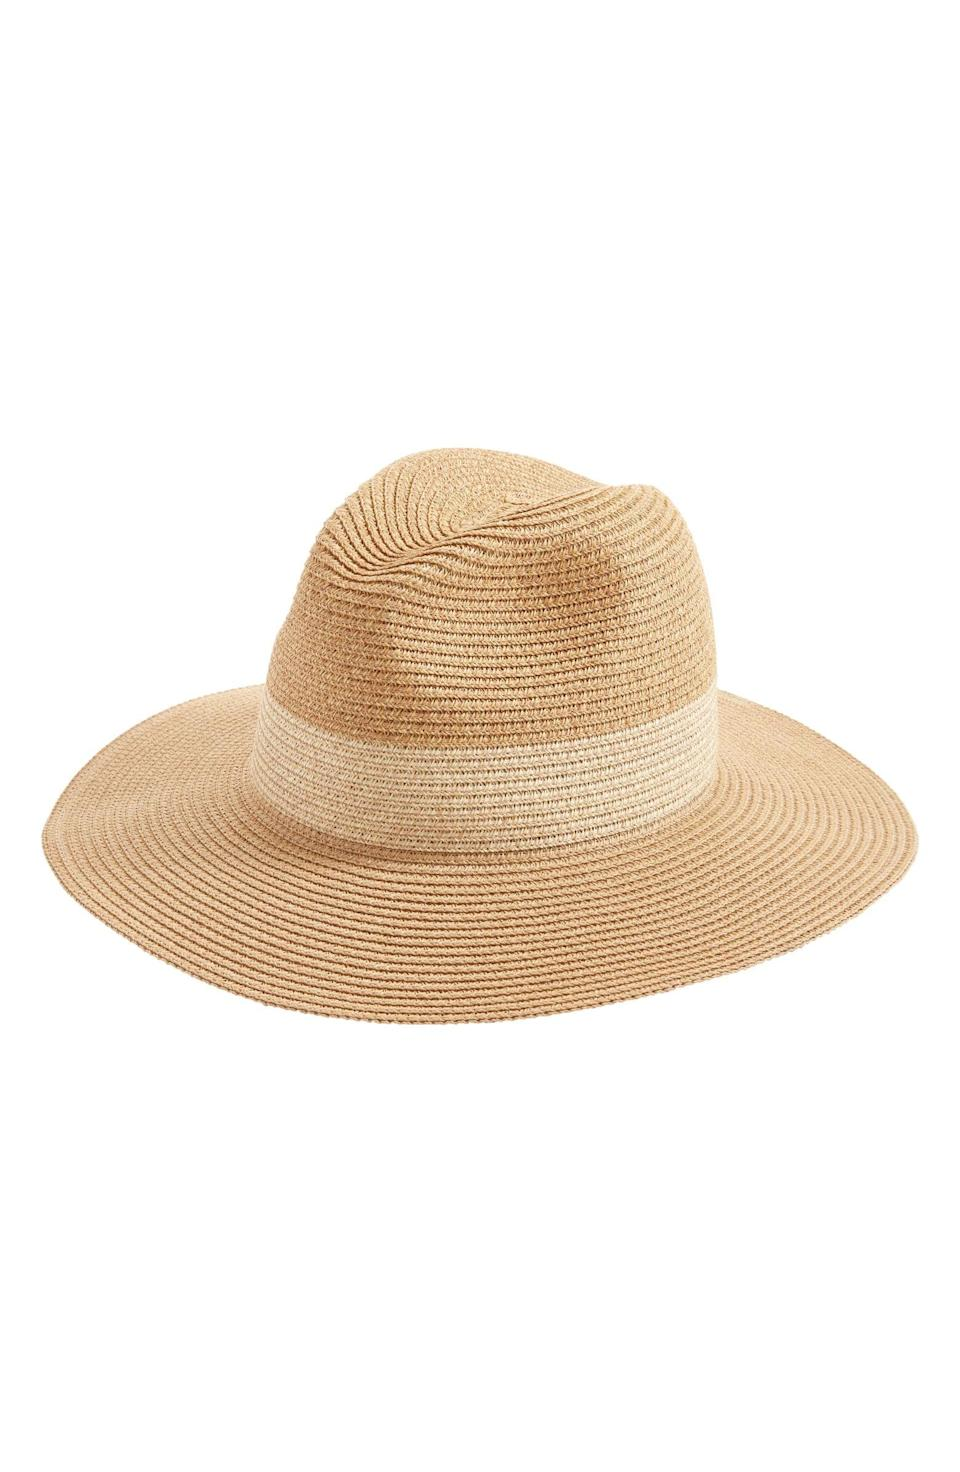 <p>Protect your face from the sun while looking chic in this <span>Halogen Packable Panama Hat</span> ($29).</p>